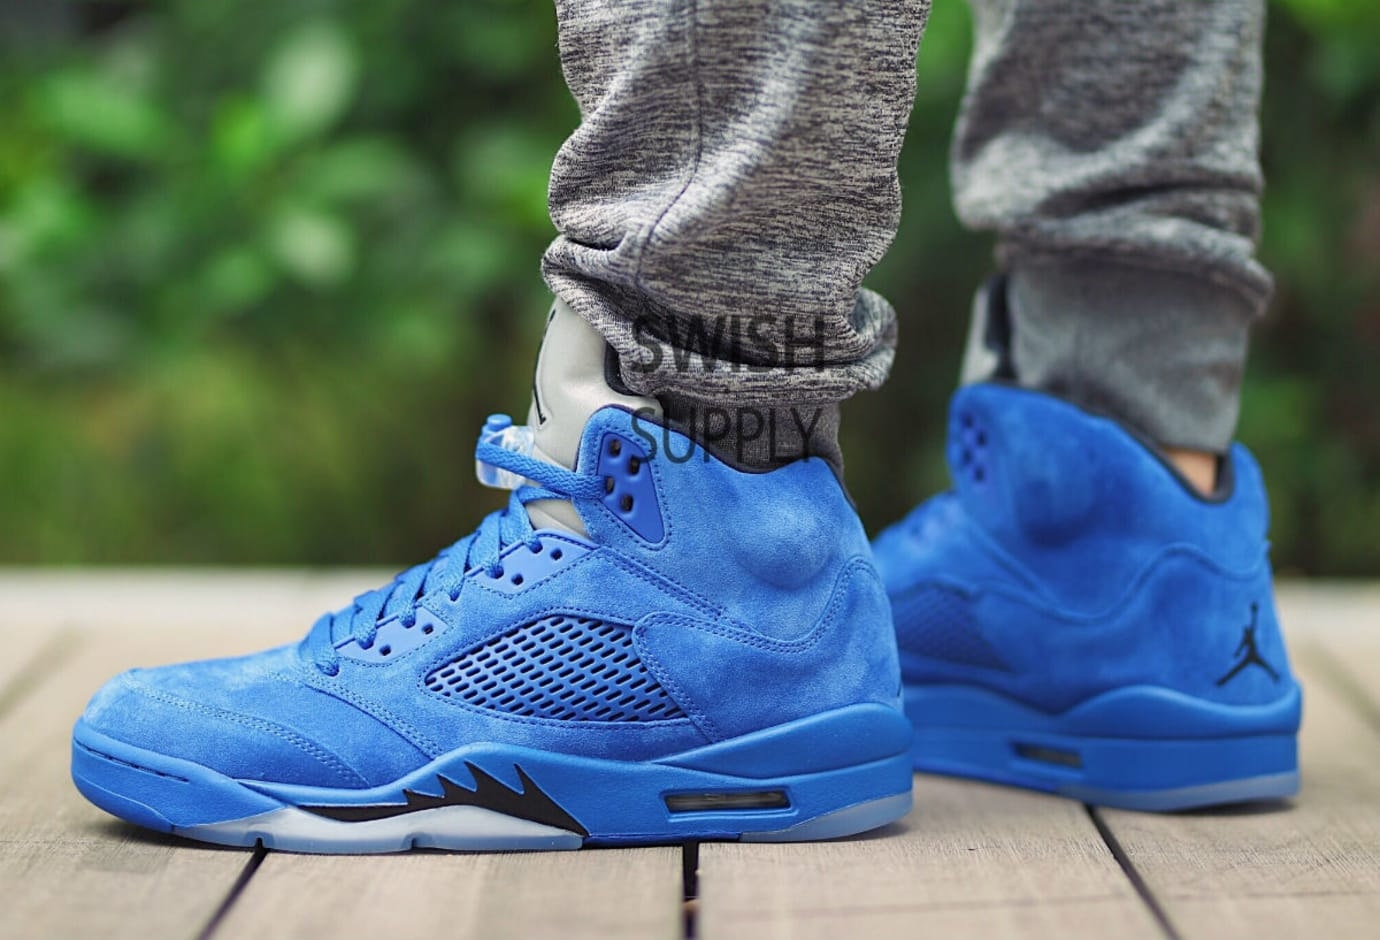 730cb99ec68282 Air Jordan 5 Blue Suede Release Date On-Foot 136021-401 (3)